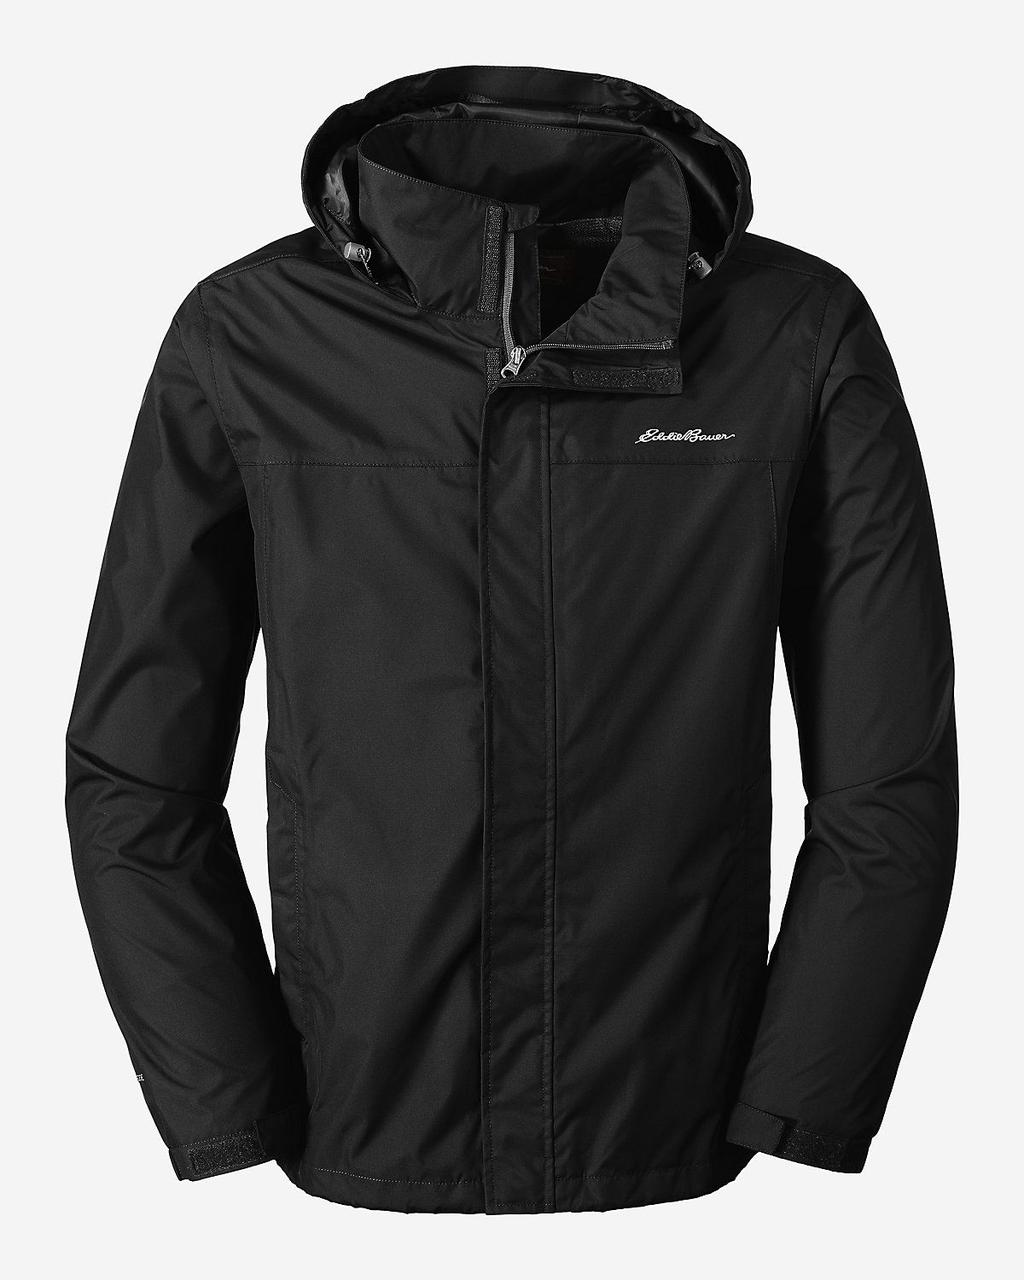 Мембранная куртка мужская Eddie Bauer Mens Rainfoil BLACK